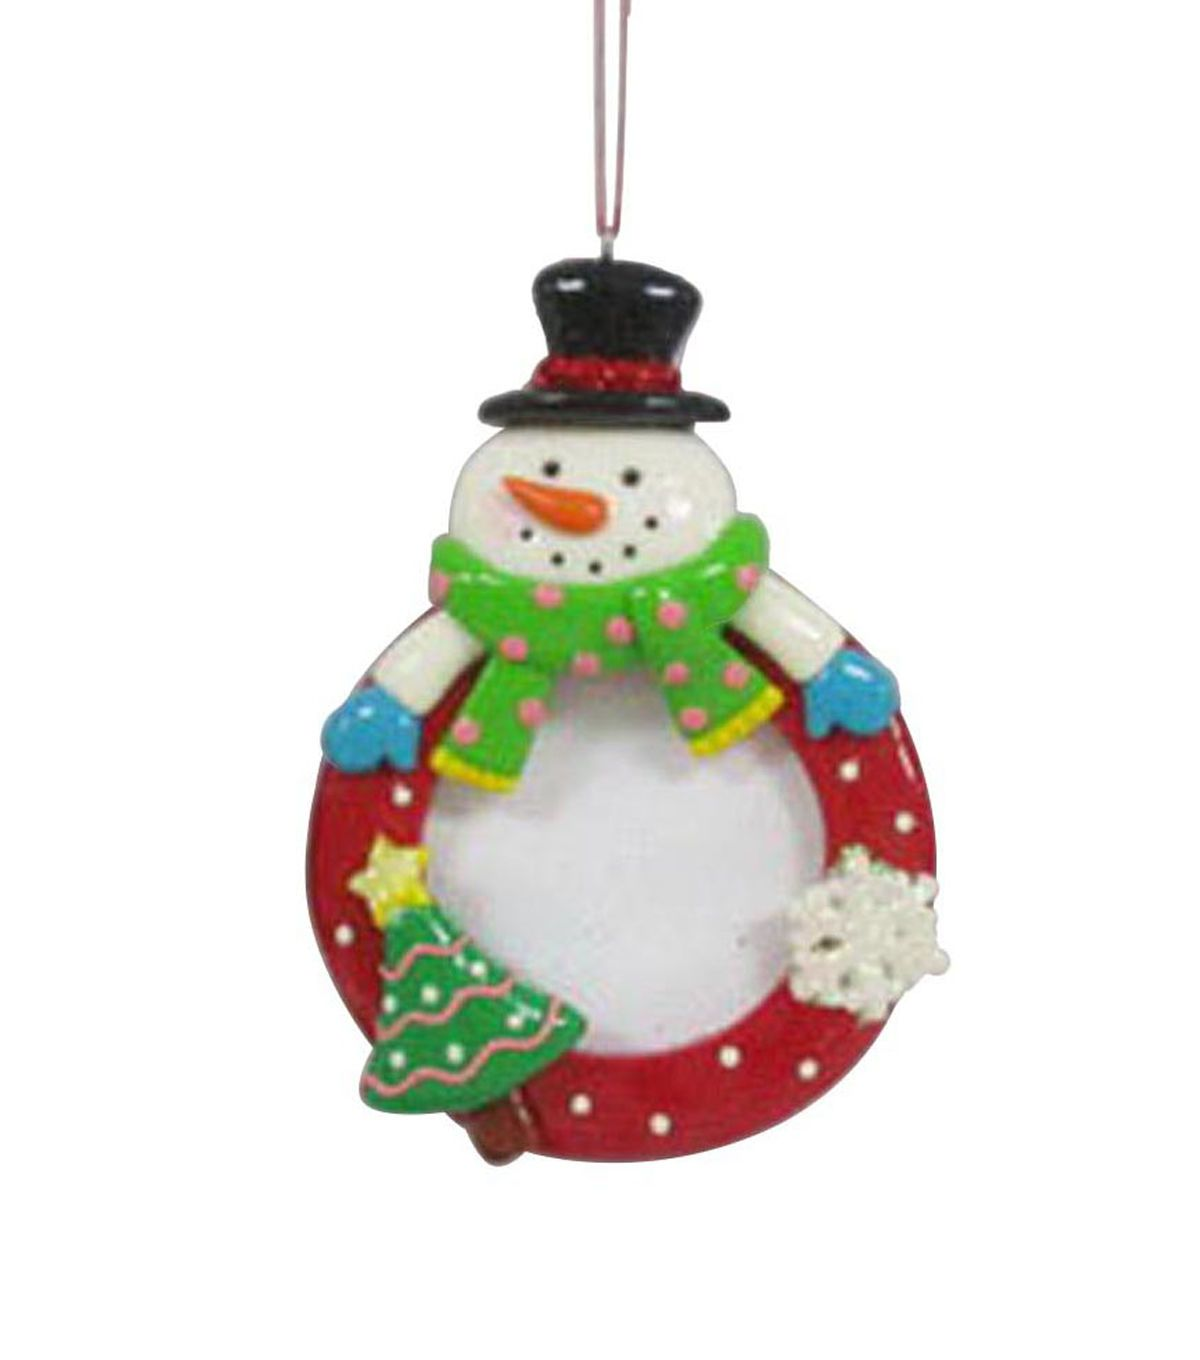 Maker S Holiday Snowman Frame Ornament Christmas Clay Holiday Crafts Photo Frame Ornaments